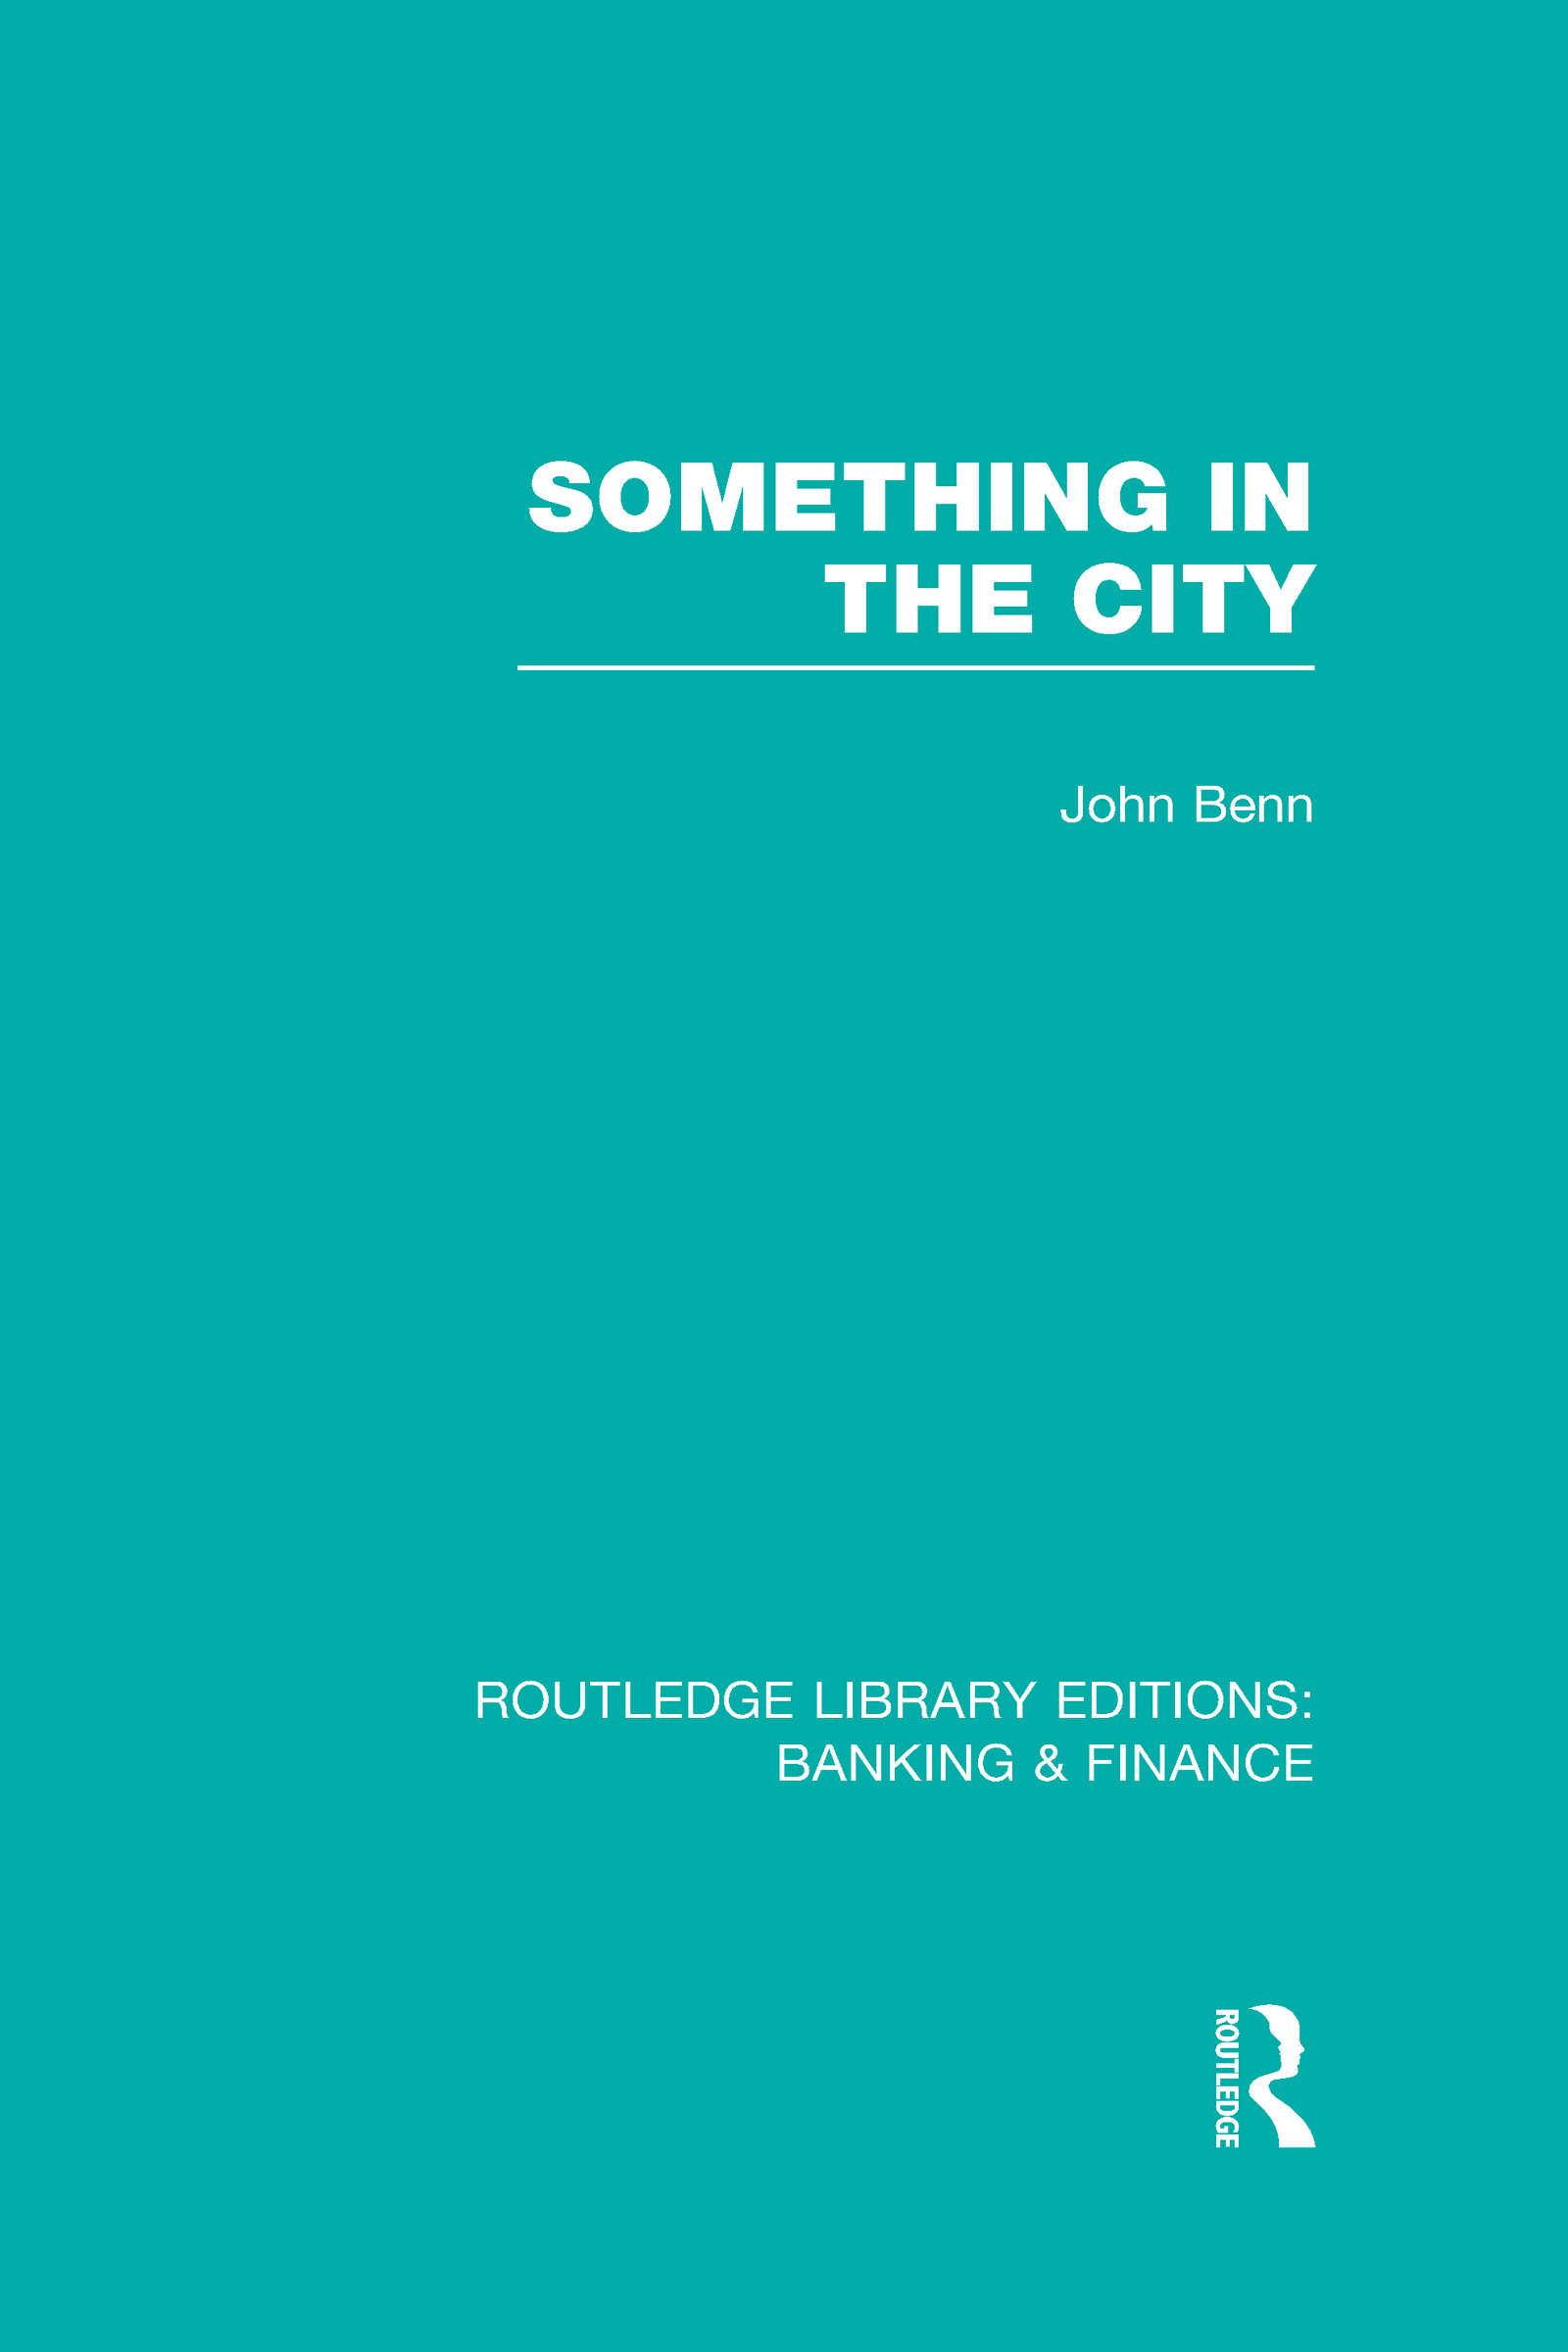 Something in the City (RLE Banking & Finance) (Hardback) book cover